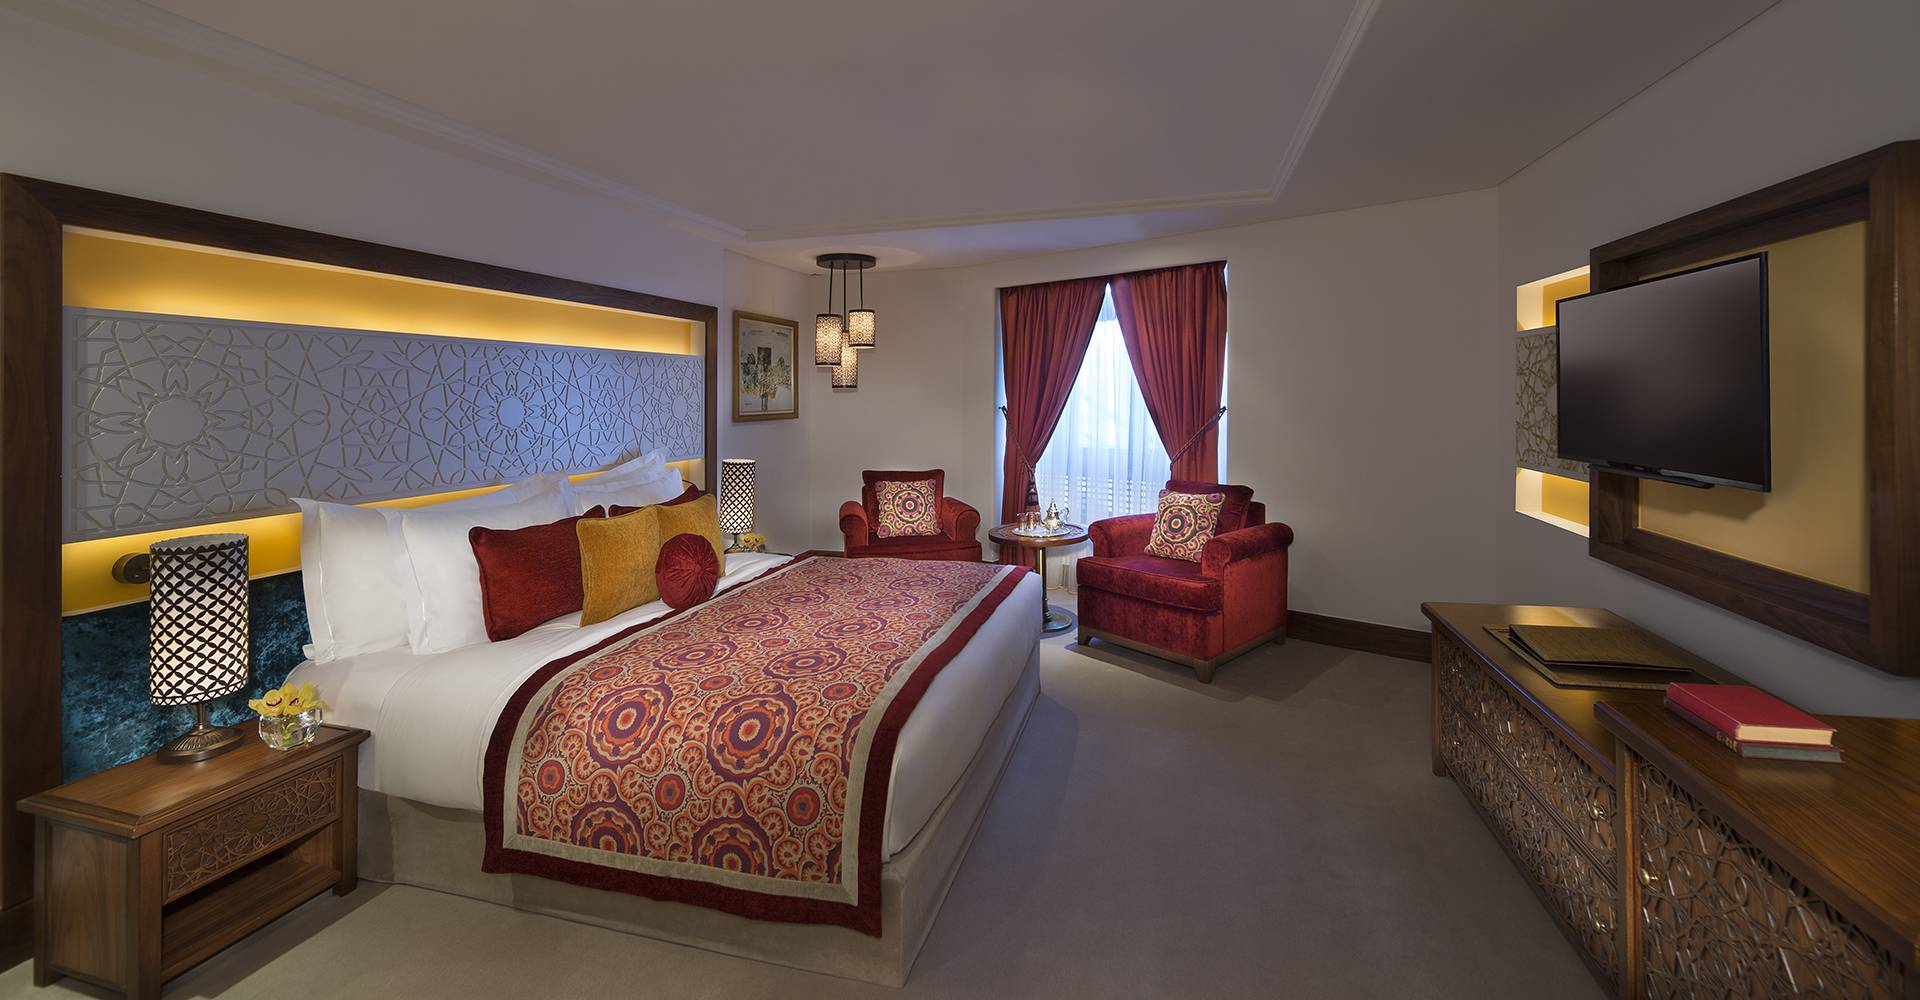 Accomodations at najd boutique hotel book now for Boutique rooms